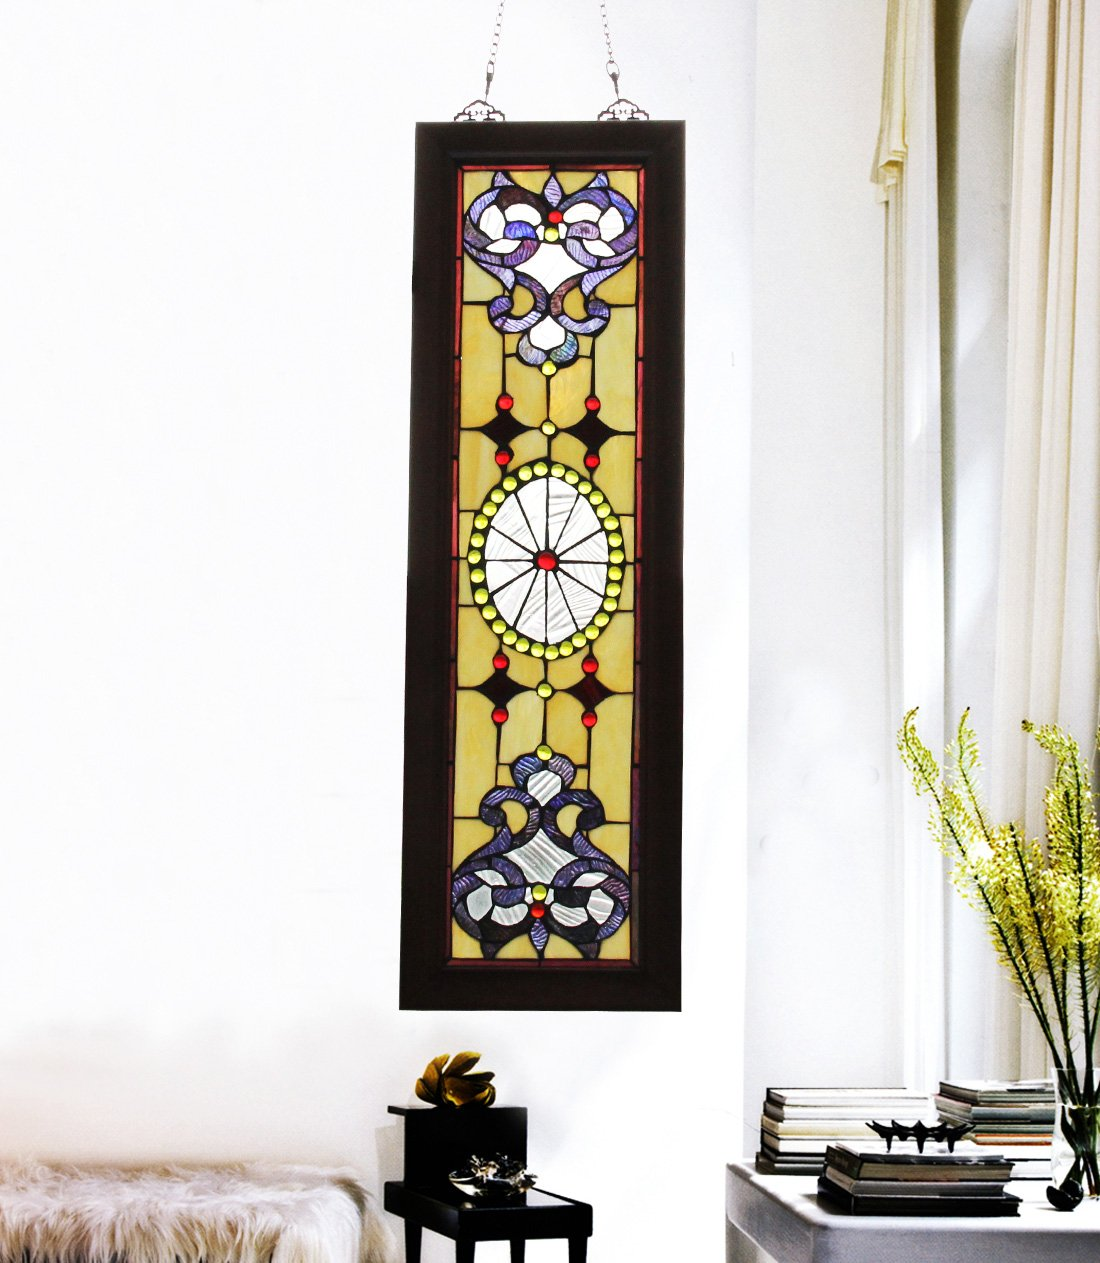 Makenier Vintage Tiffany Style Stained Church Art Glass Decorative Long and Narrow Window Panel Wall Hanging 3